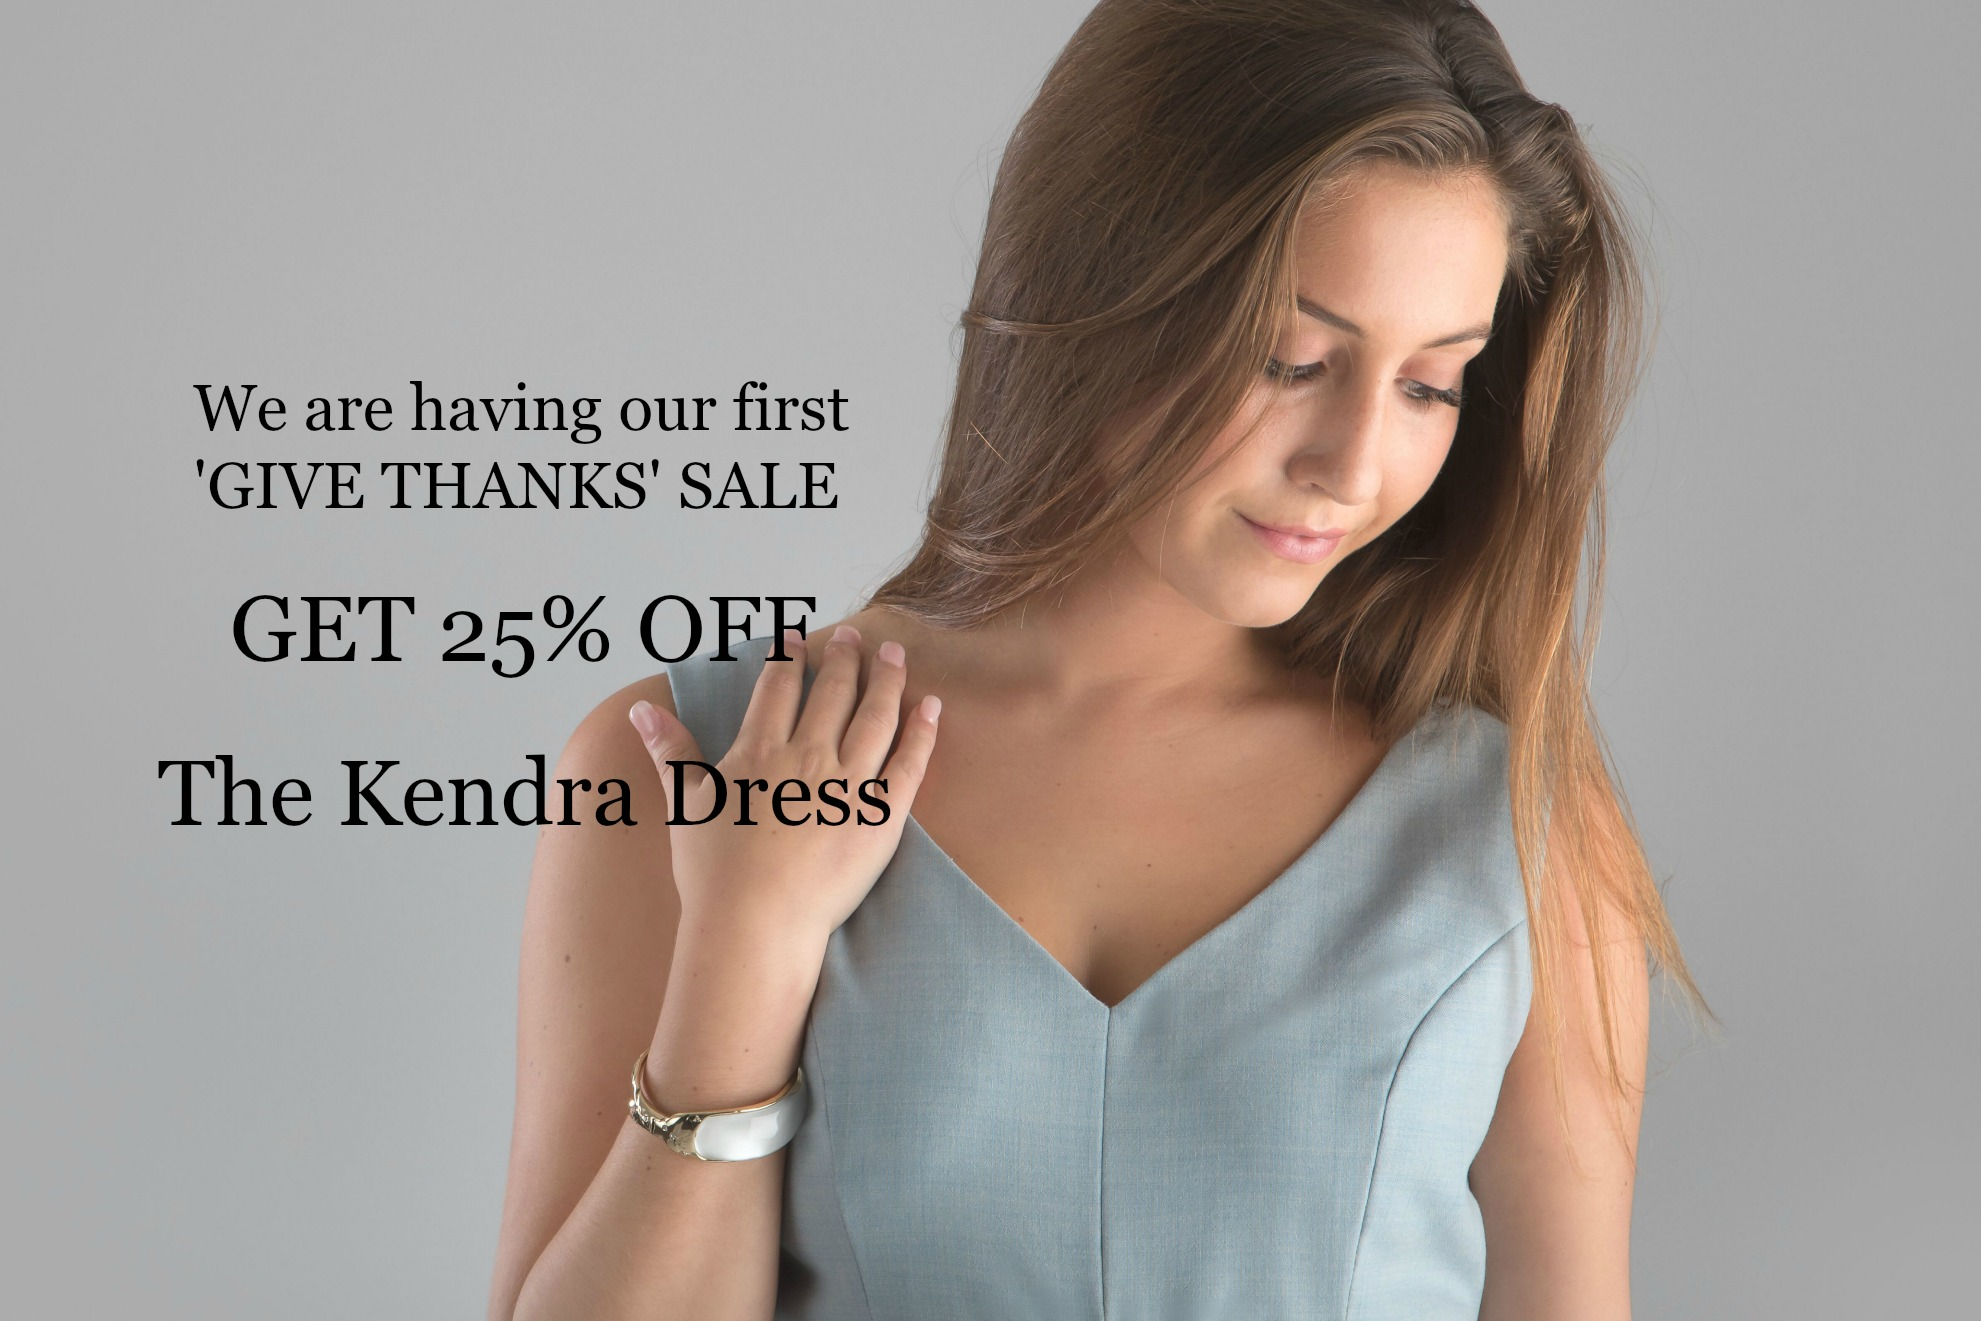 kendra-dress-give-thanks-sale-aliceandann